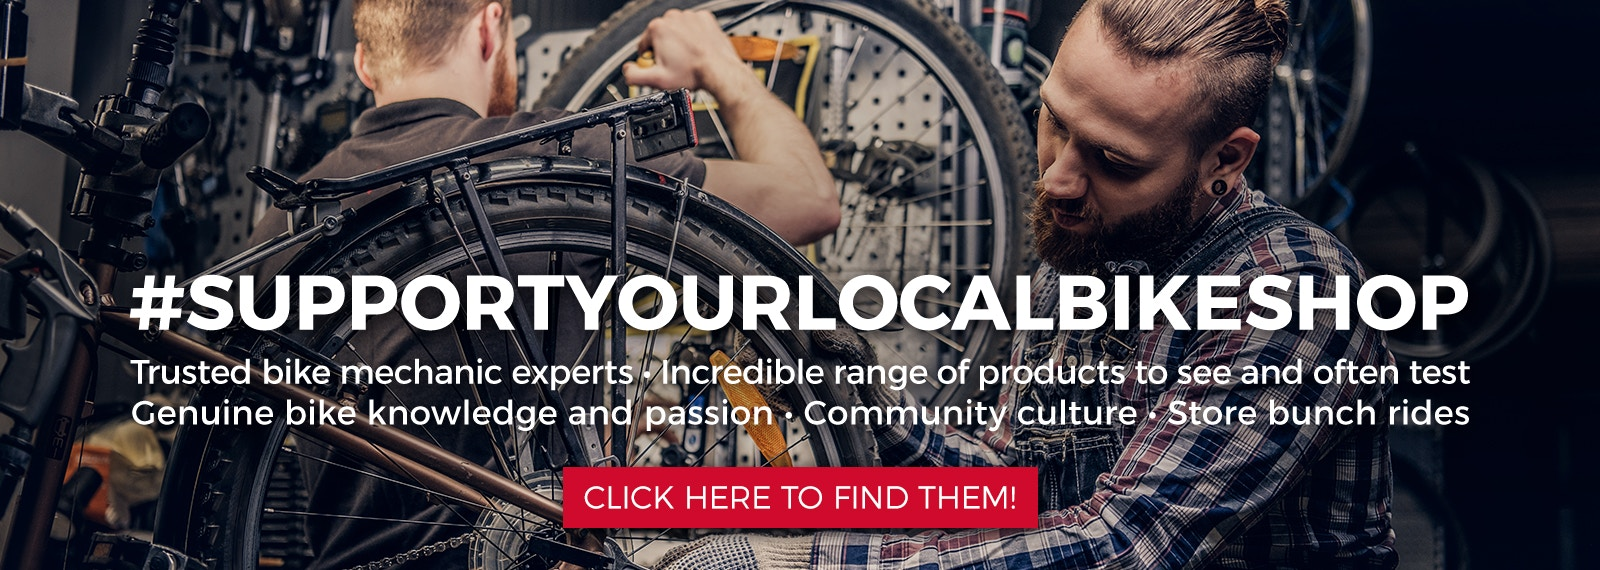 #supportyourlocalbikeshop